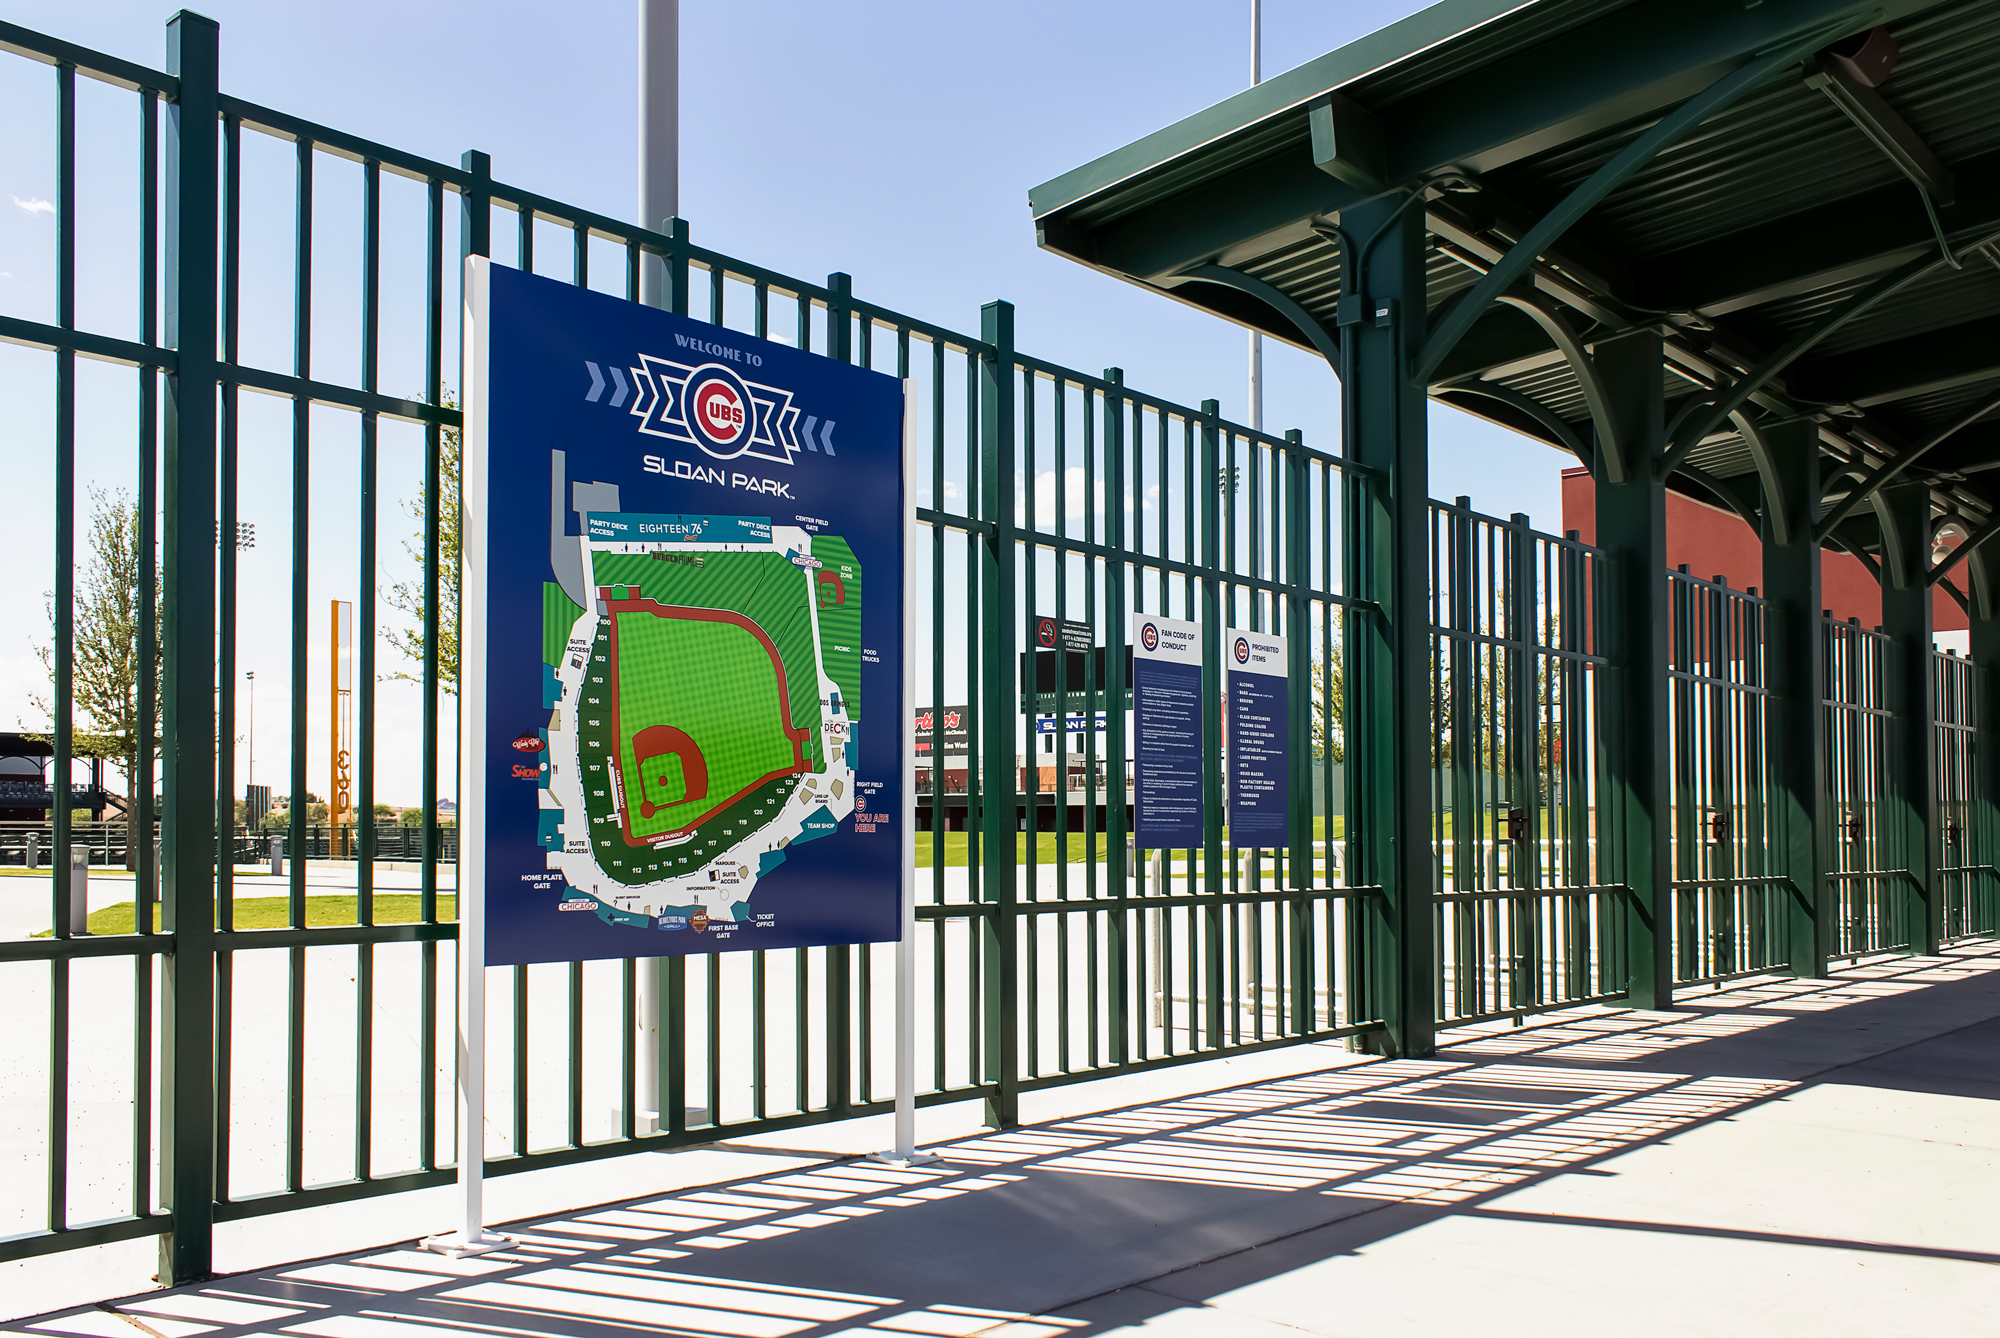 The freestanding wayfinding sign guide fans around the park. Branded wayfinding elements are a great addition to the user experience.